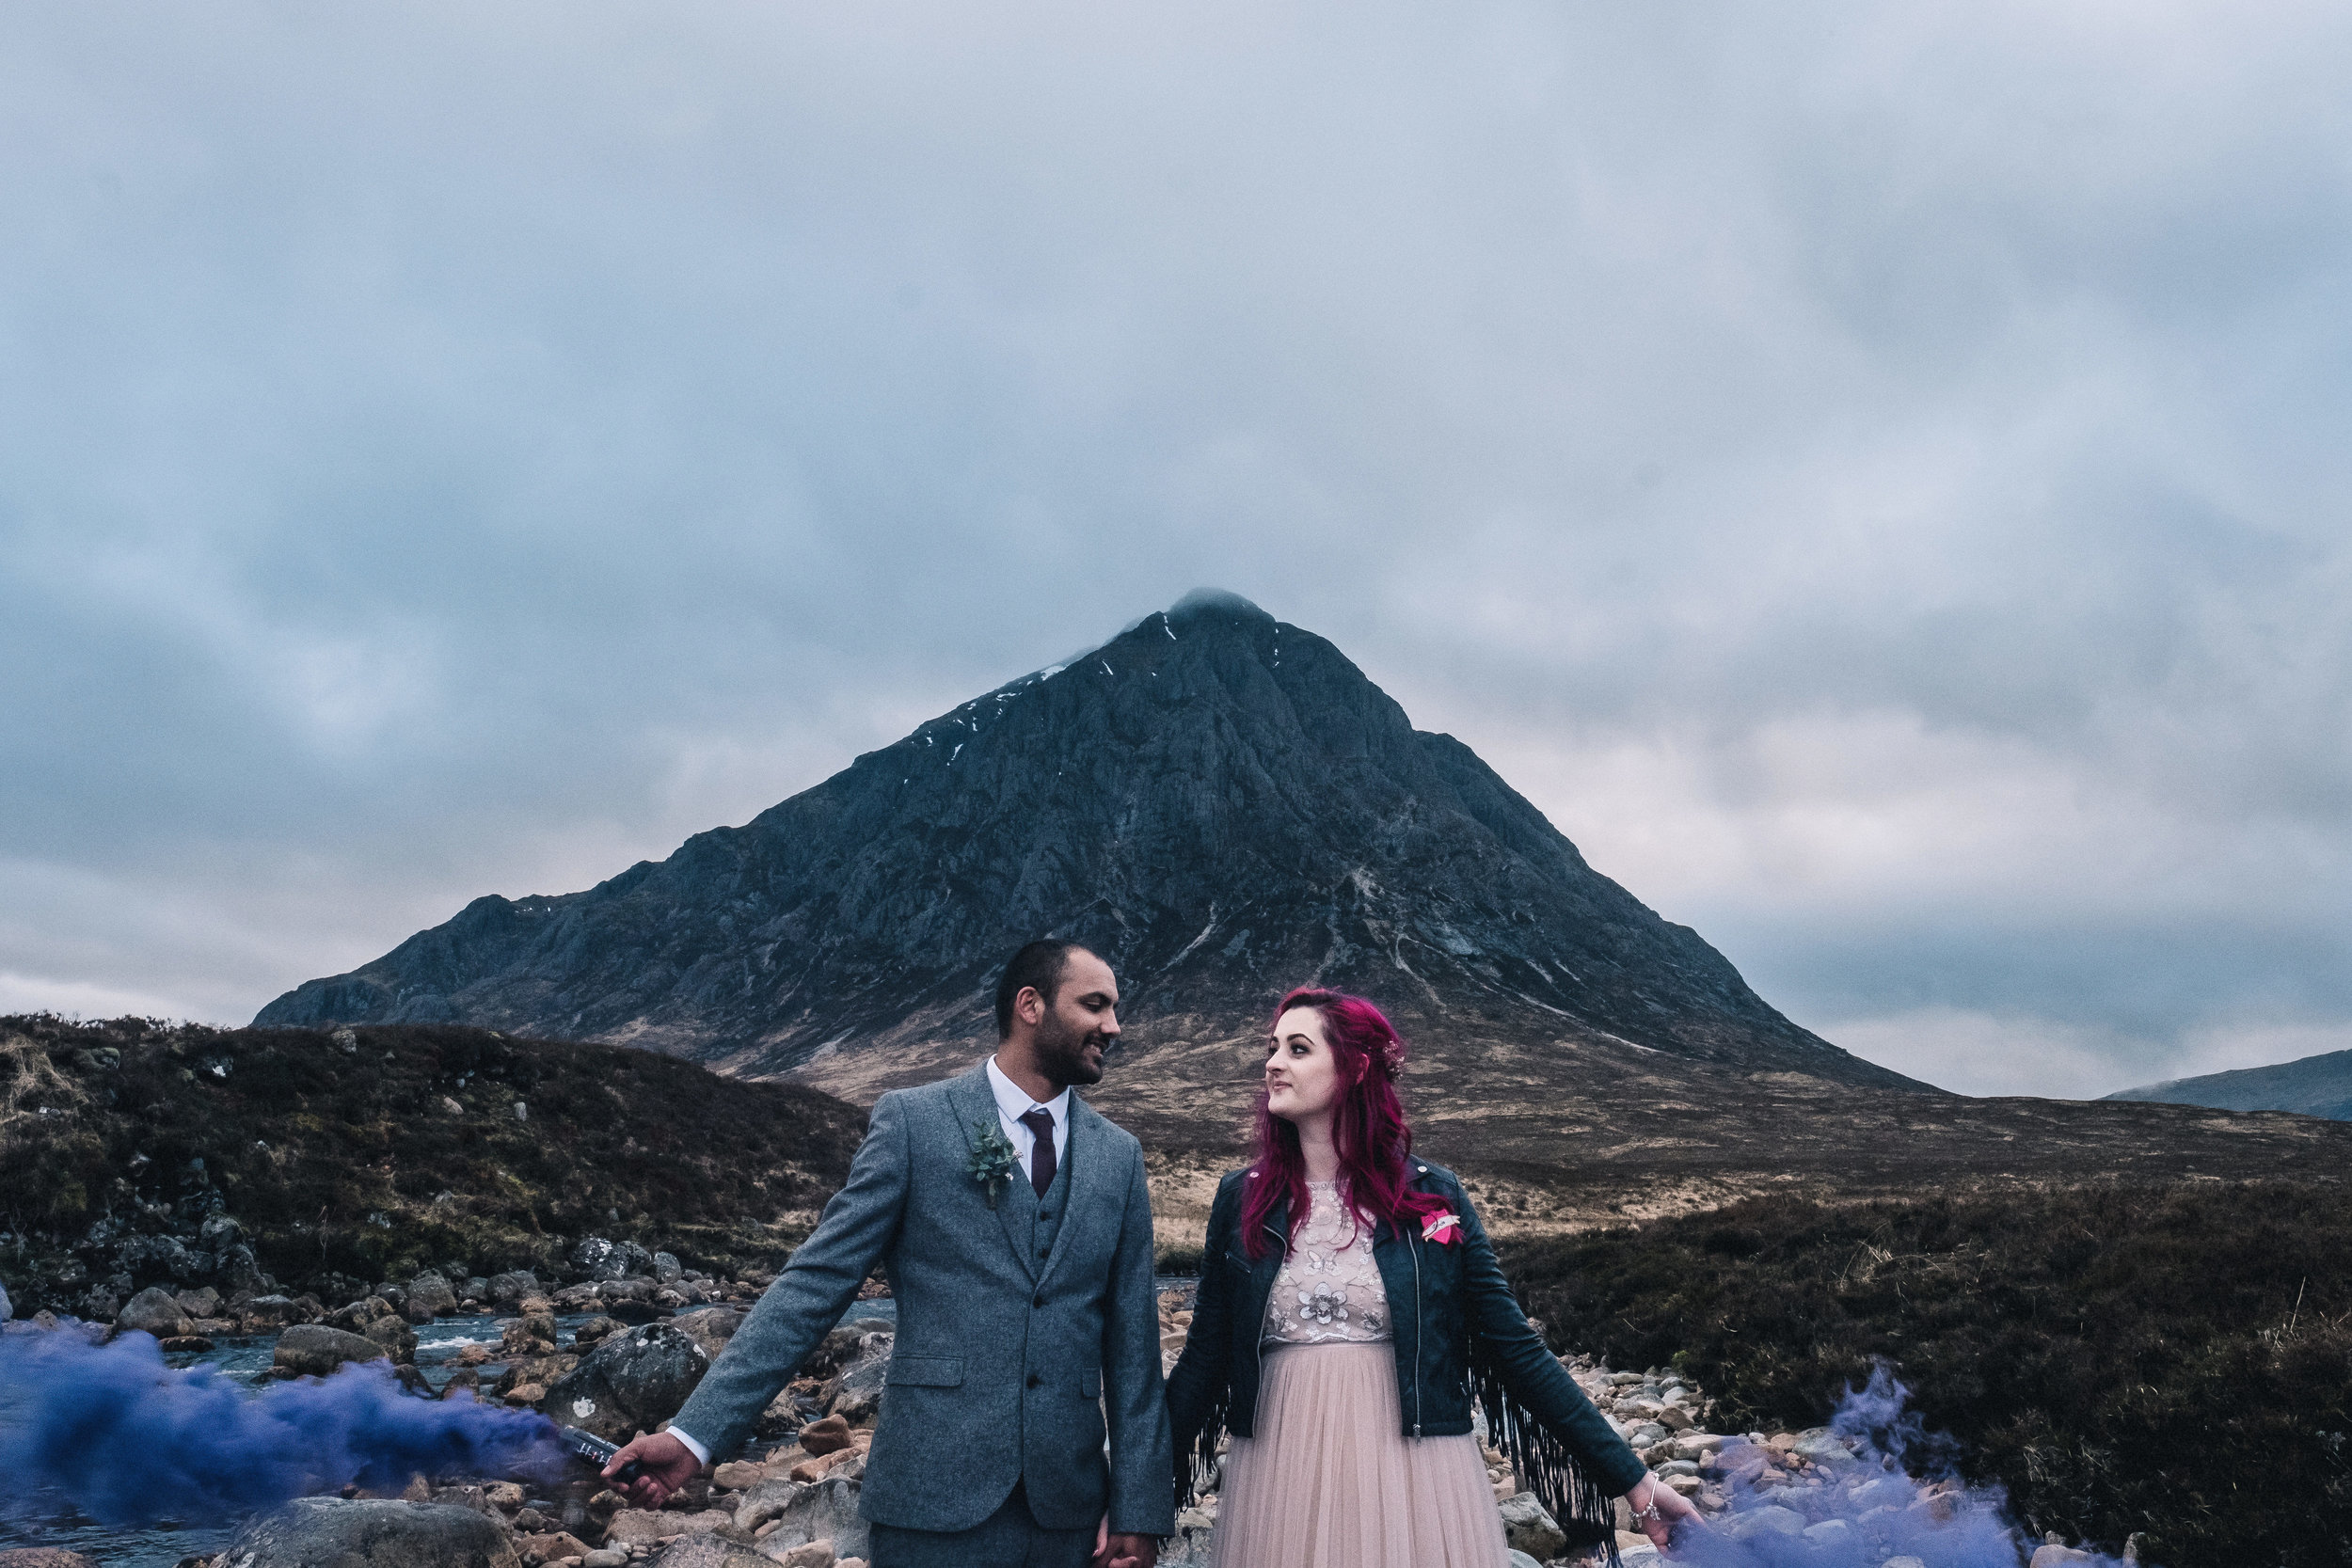 Couple at foot of Buchaille Etive Mor